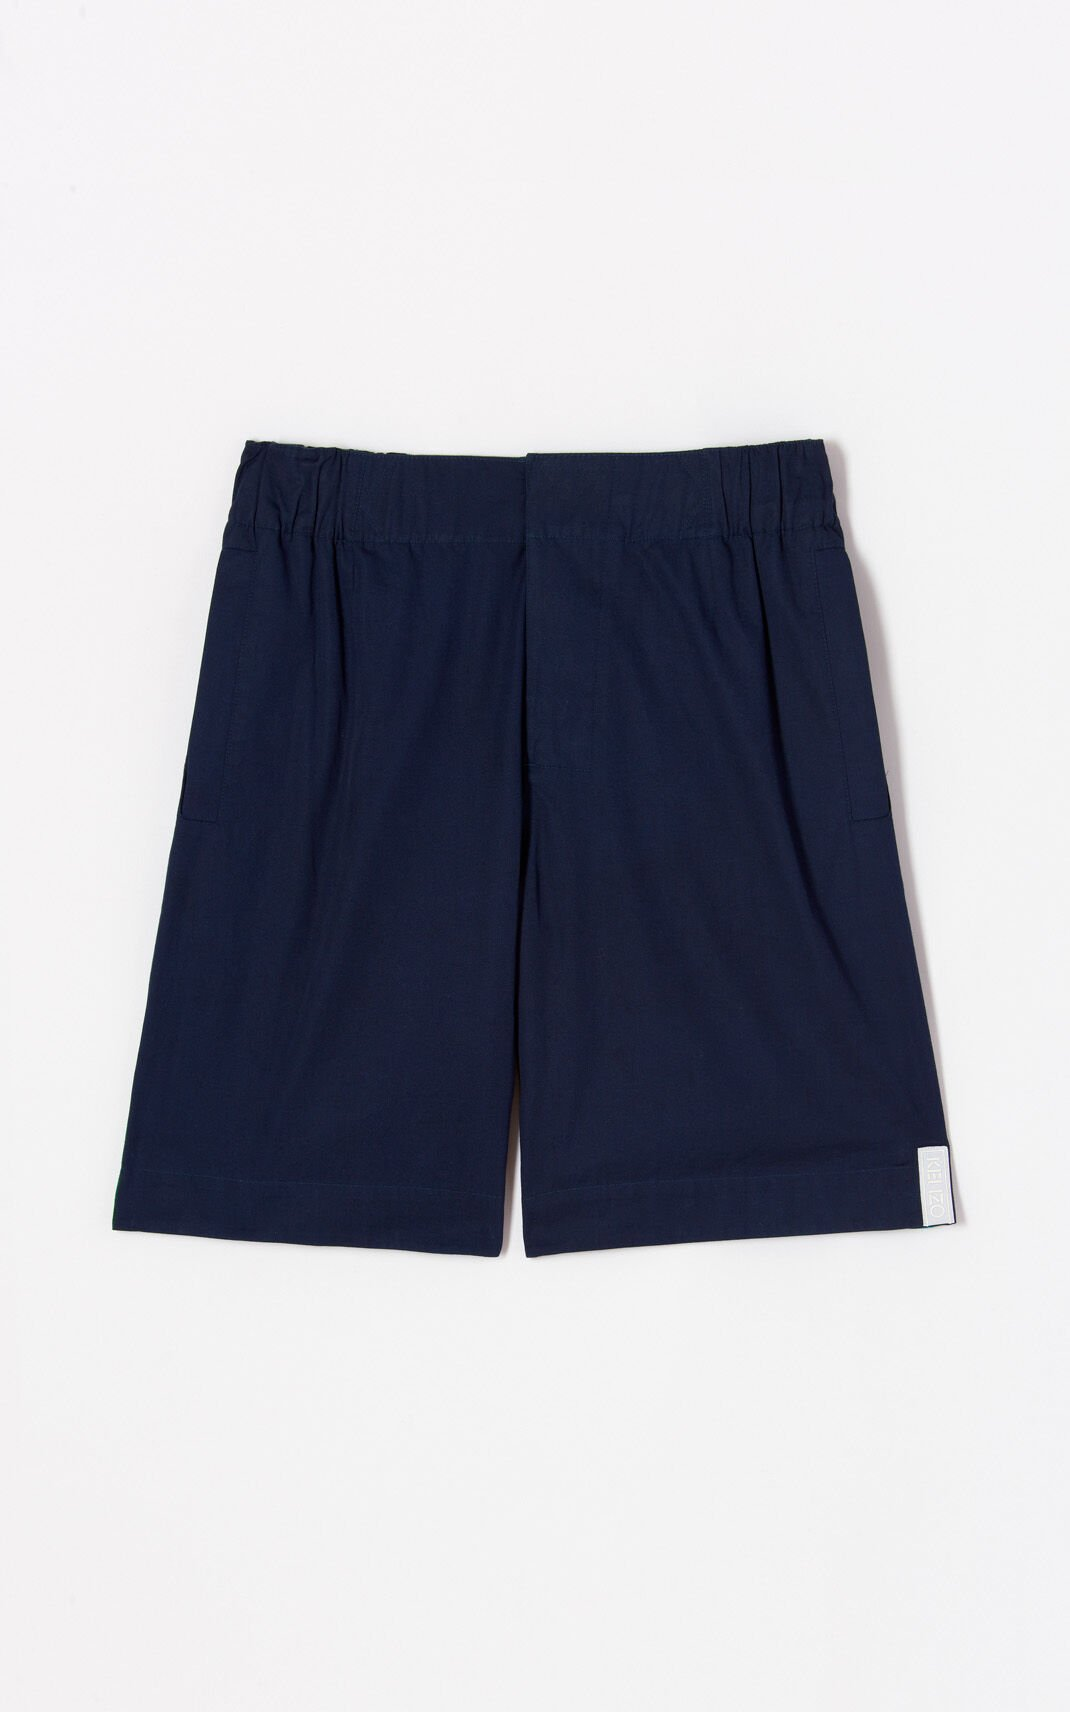 NAVY BLUE 'High Summer Capsule Collection' shorts for women KENZO